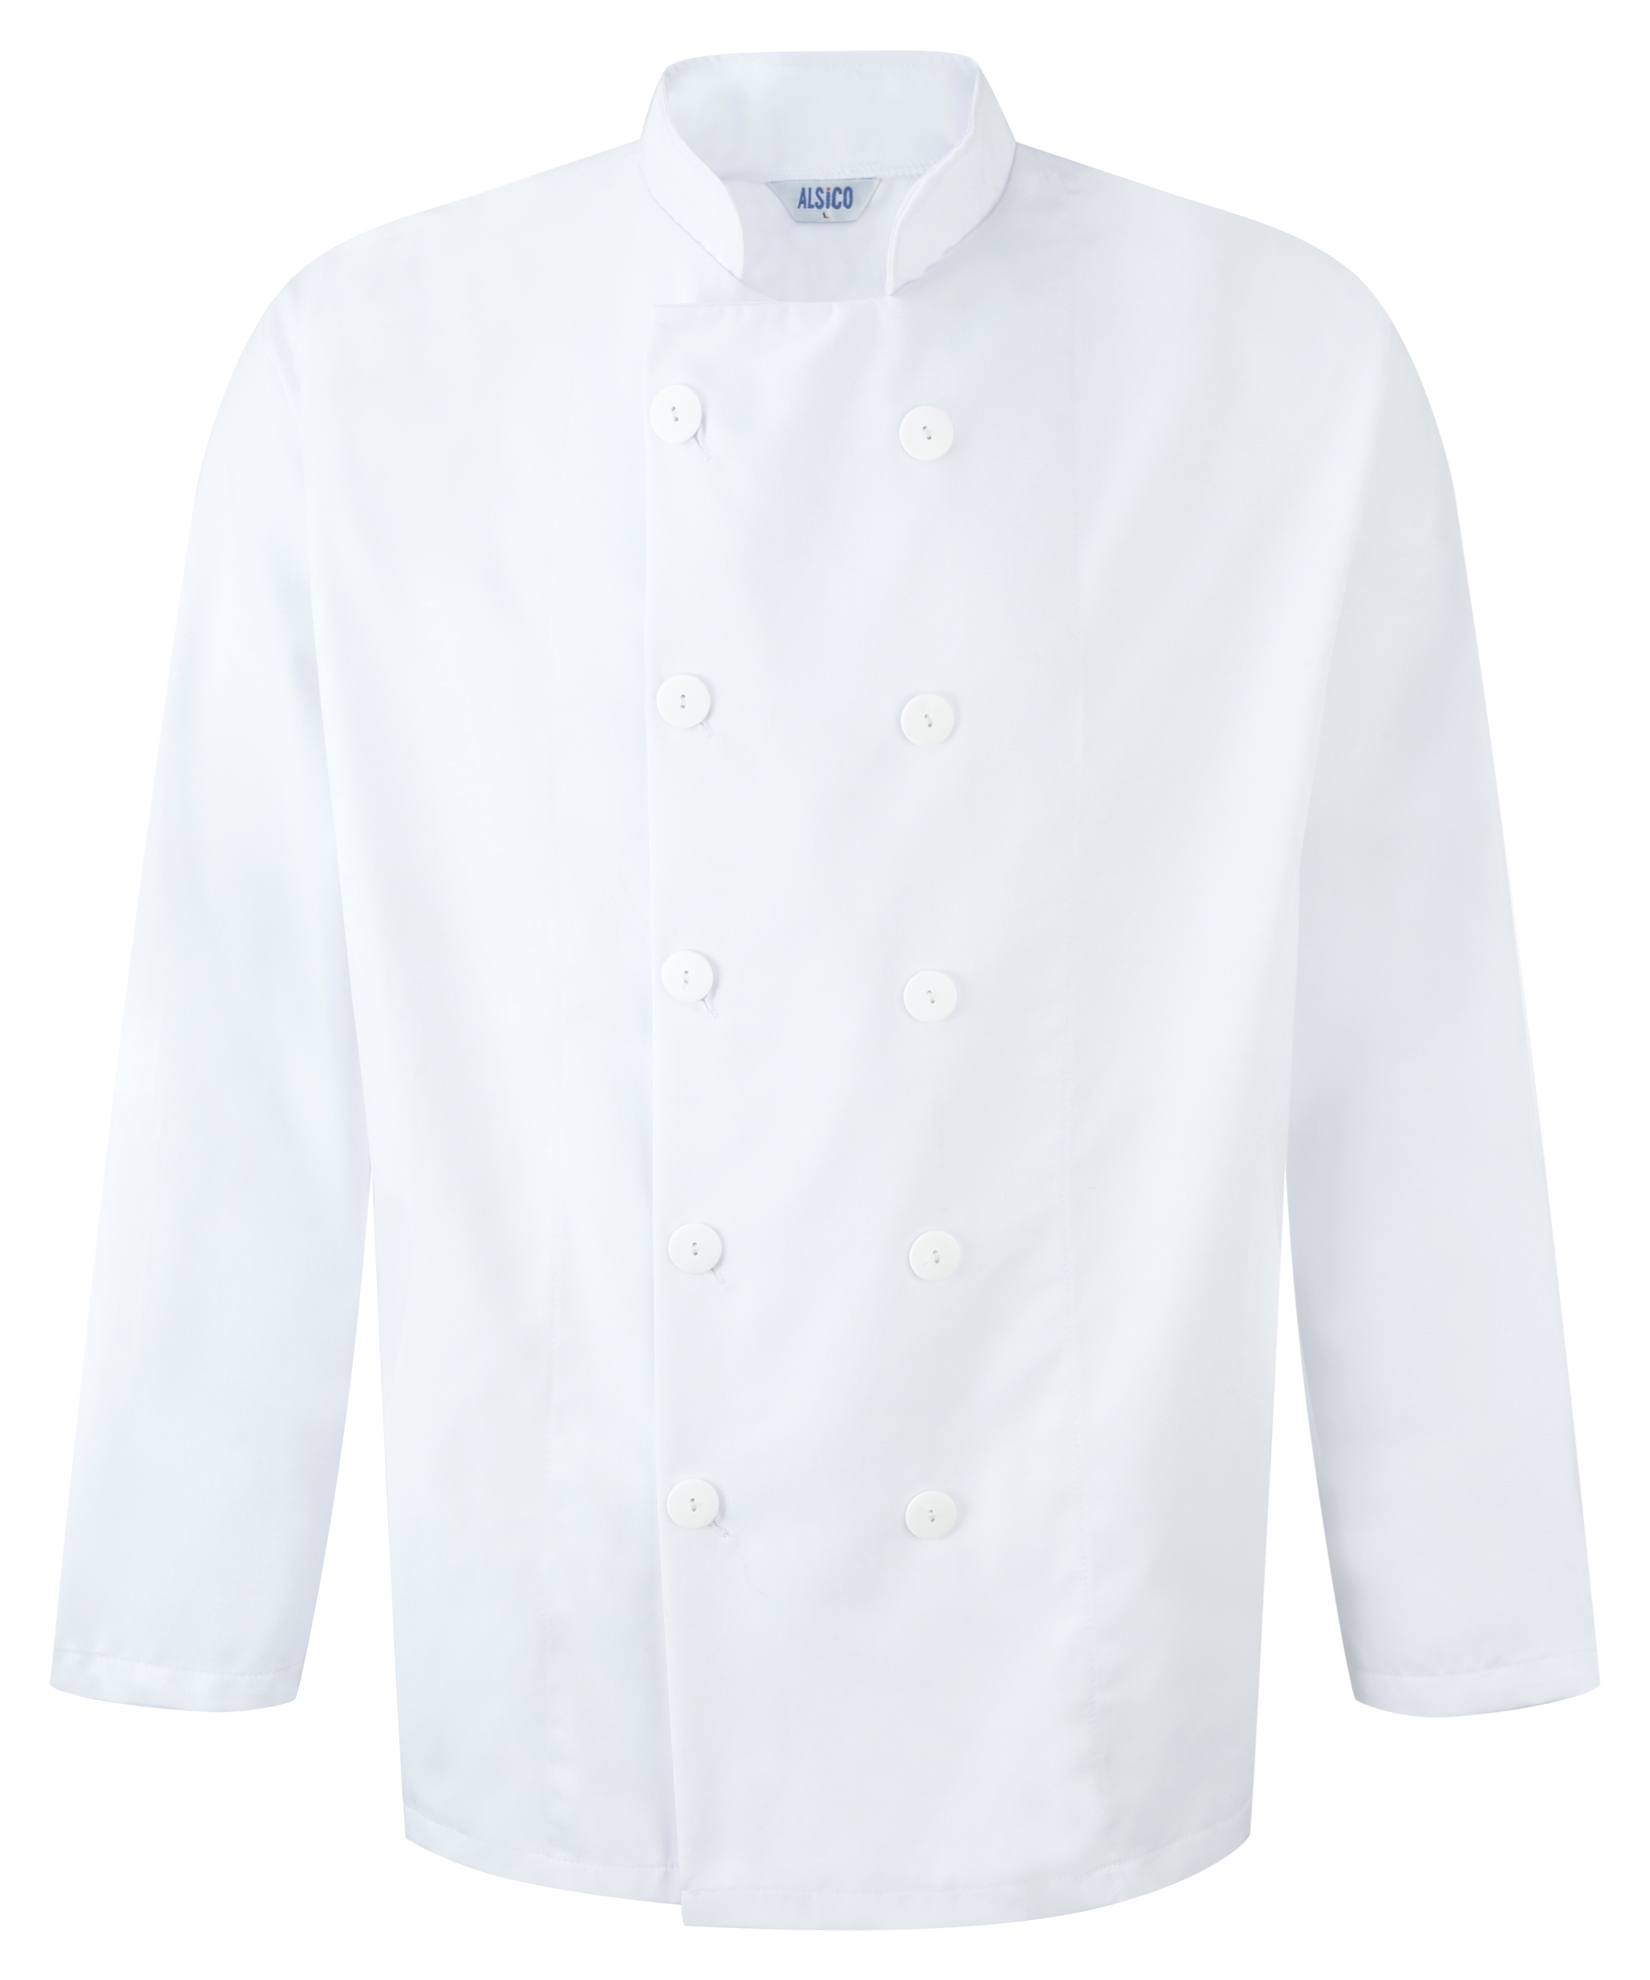 Picture of Unisex L/S Chefs Jacket with Button Fastening - White